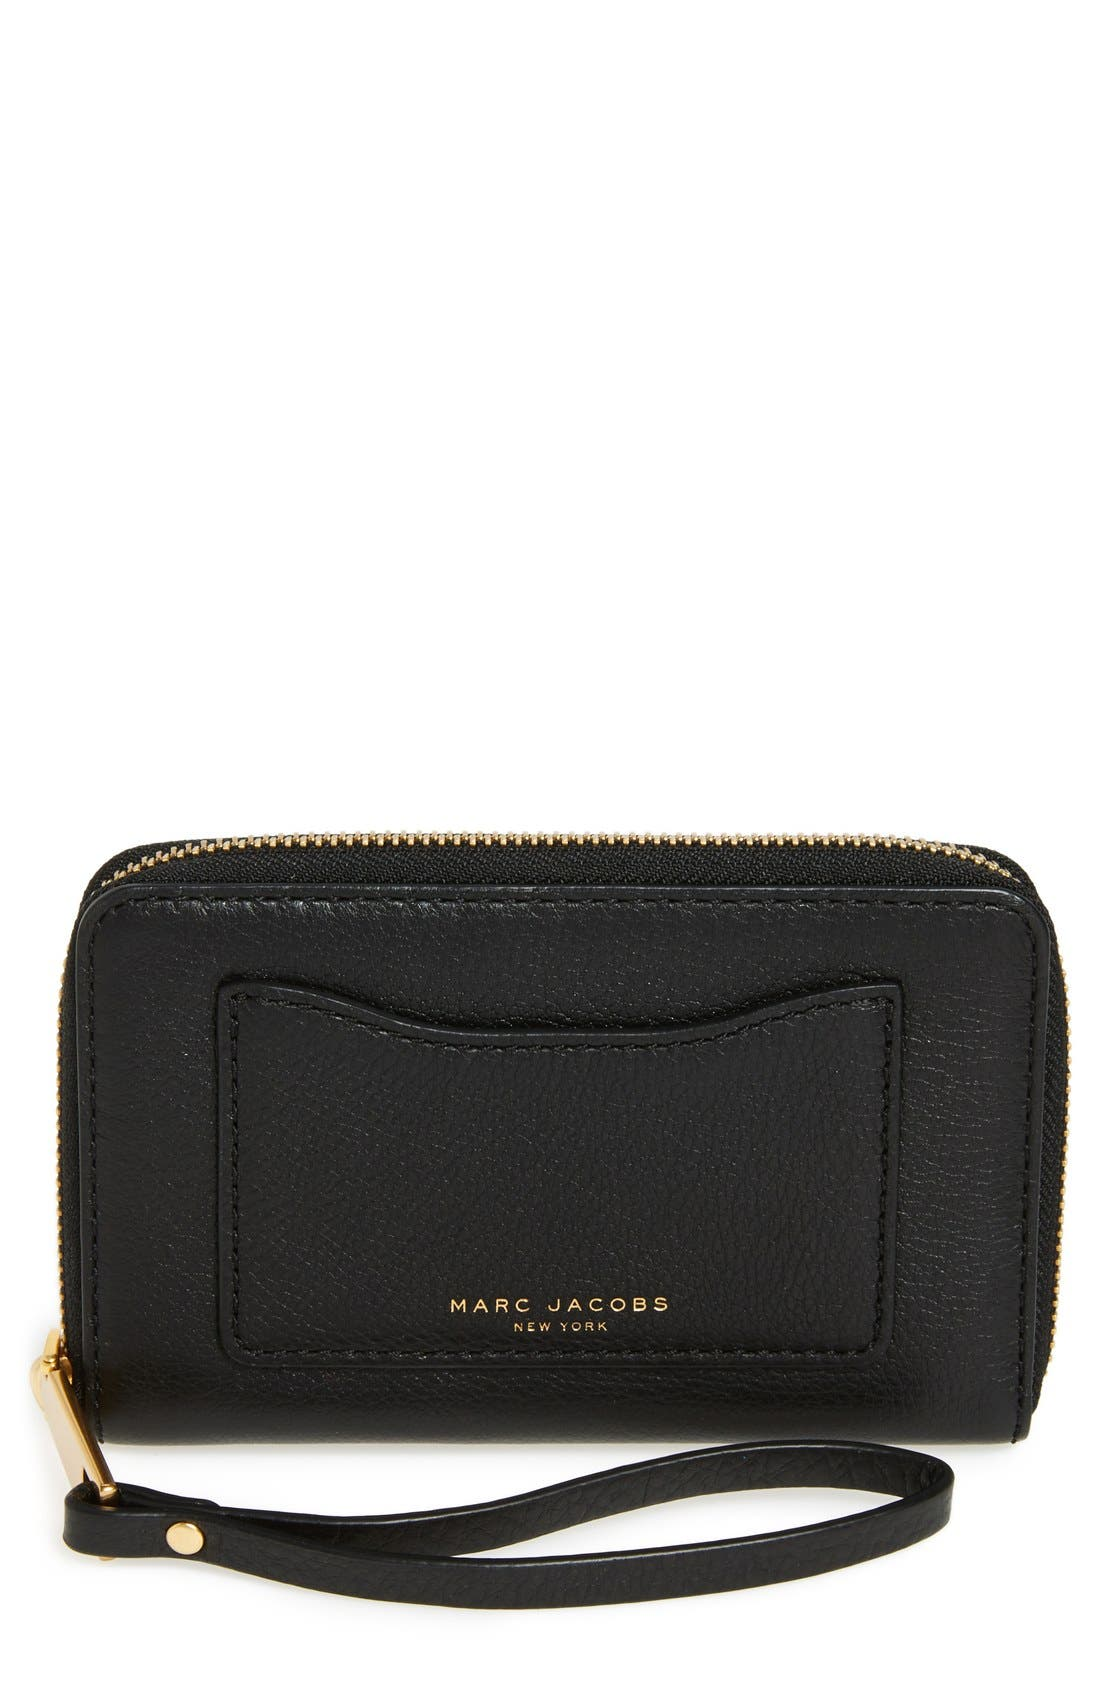 MARC JACOBS 'Recruit' Leather Wallet